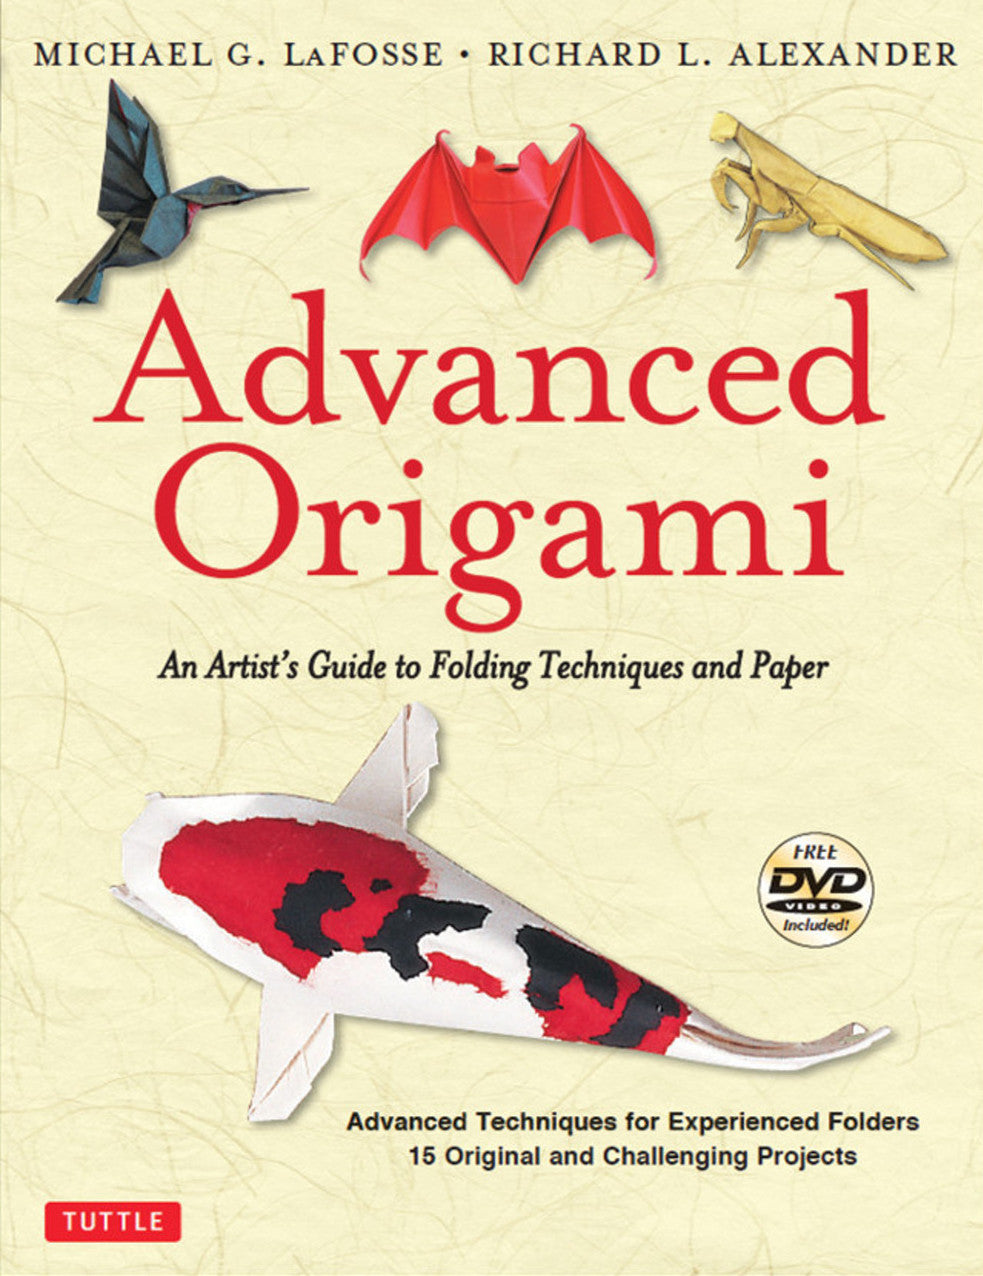 Advanced Origami Soft Bound